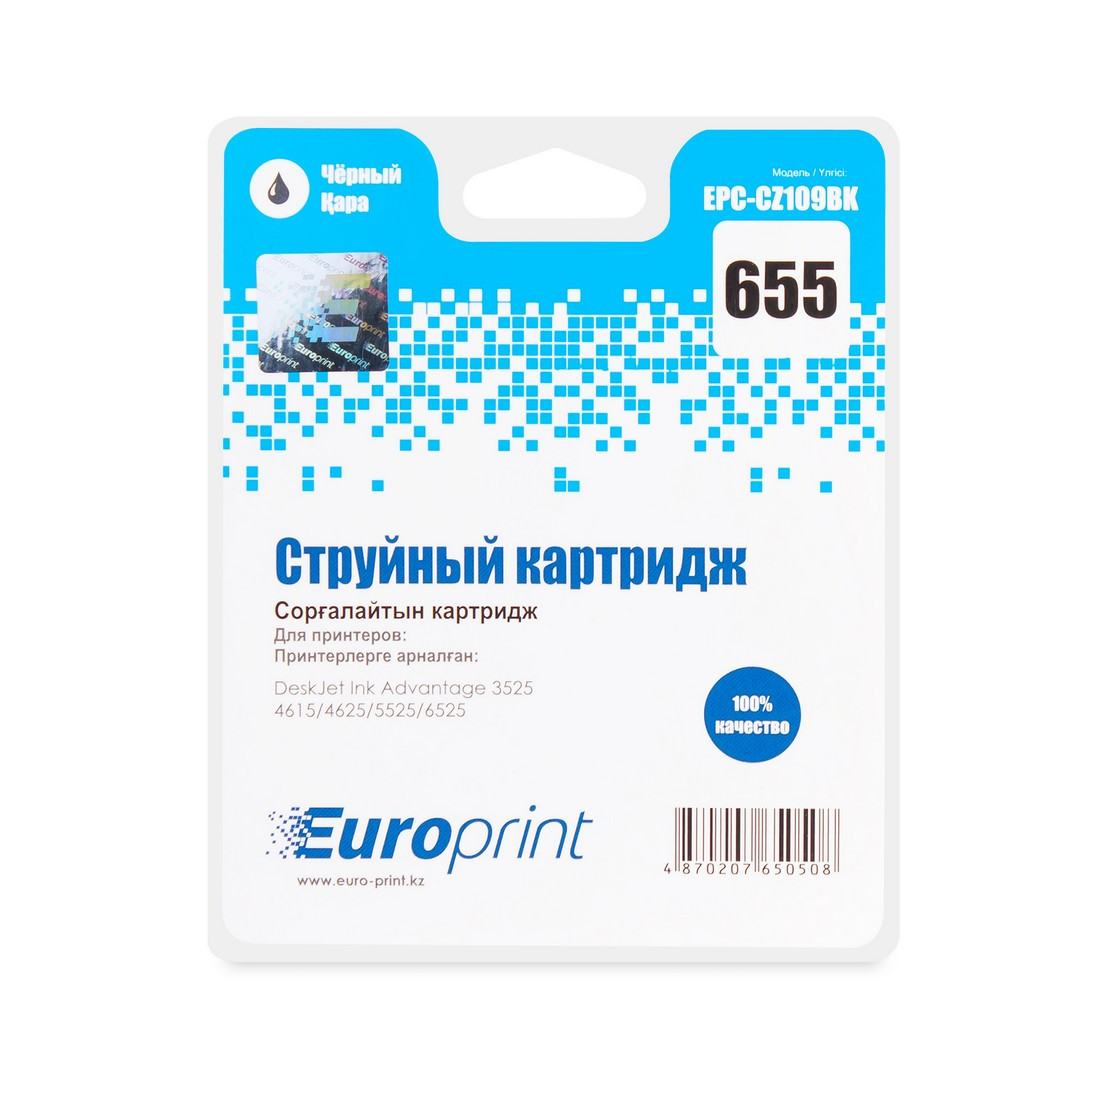 Картридж, Europrint, EPC-CZ109BK, №655, Для принтеров HP DeskJet Ink Advantage 3525/4615/4625/5525/6525, 22 мл